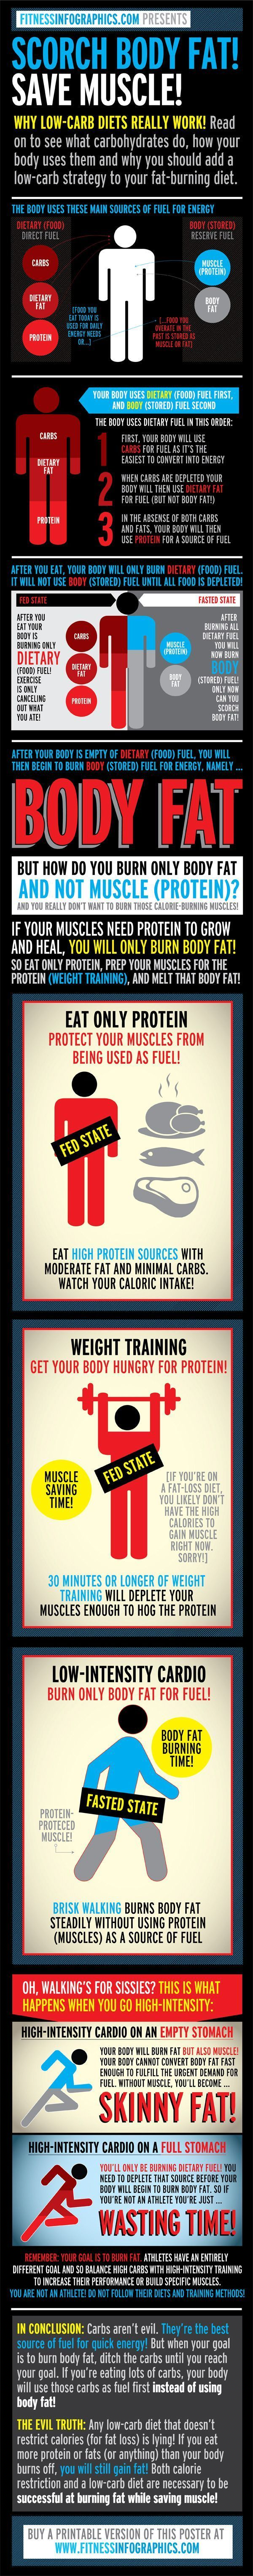 How the body uses different sources of fuel, both dietary (proteins, carbs, fats) and stored (body fat, muscle).: